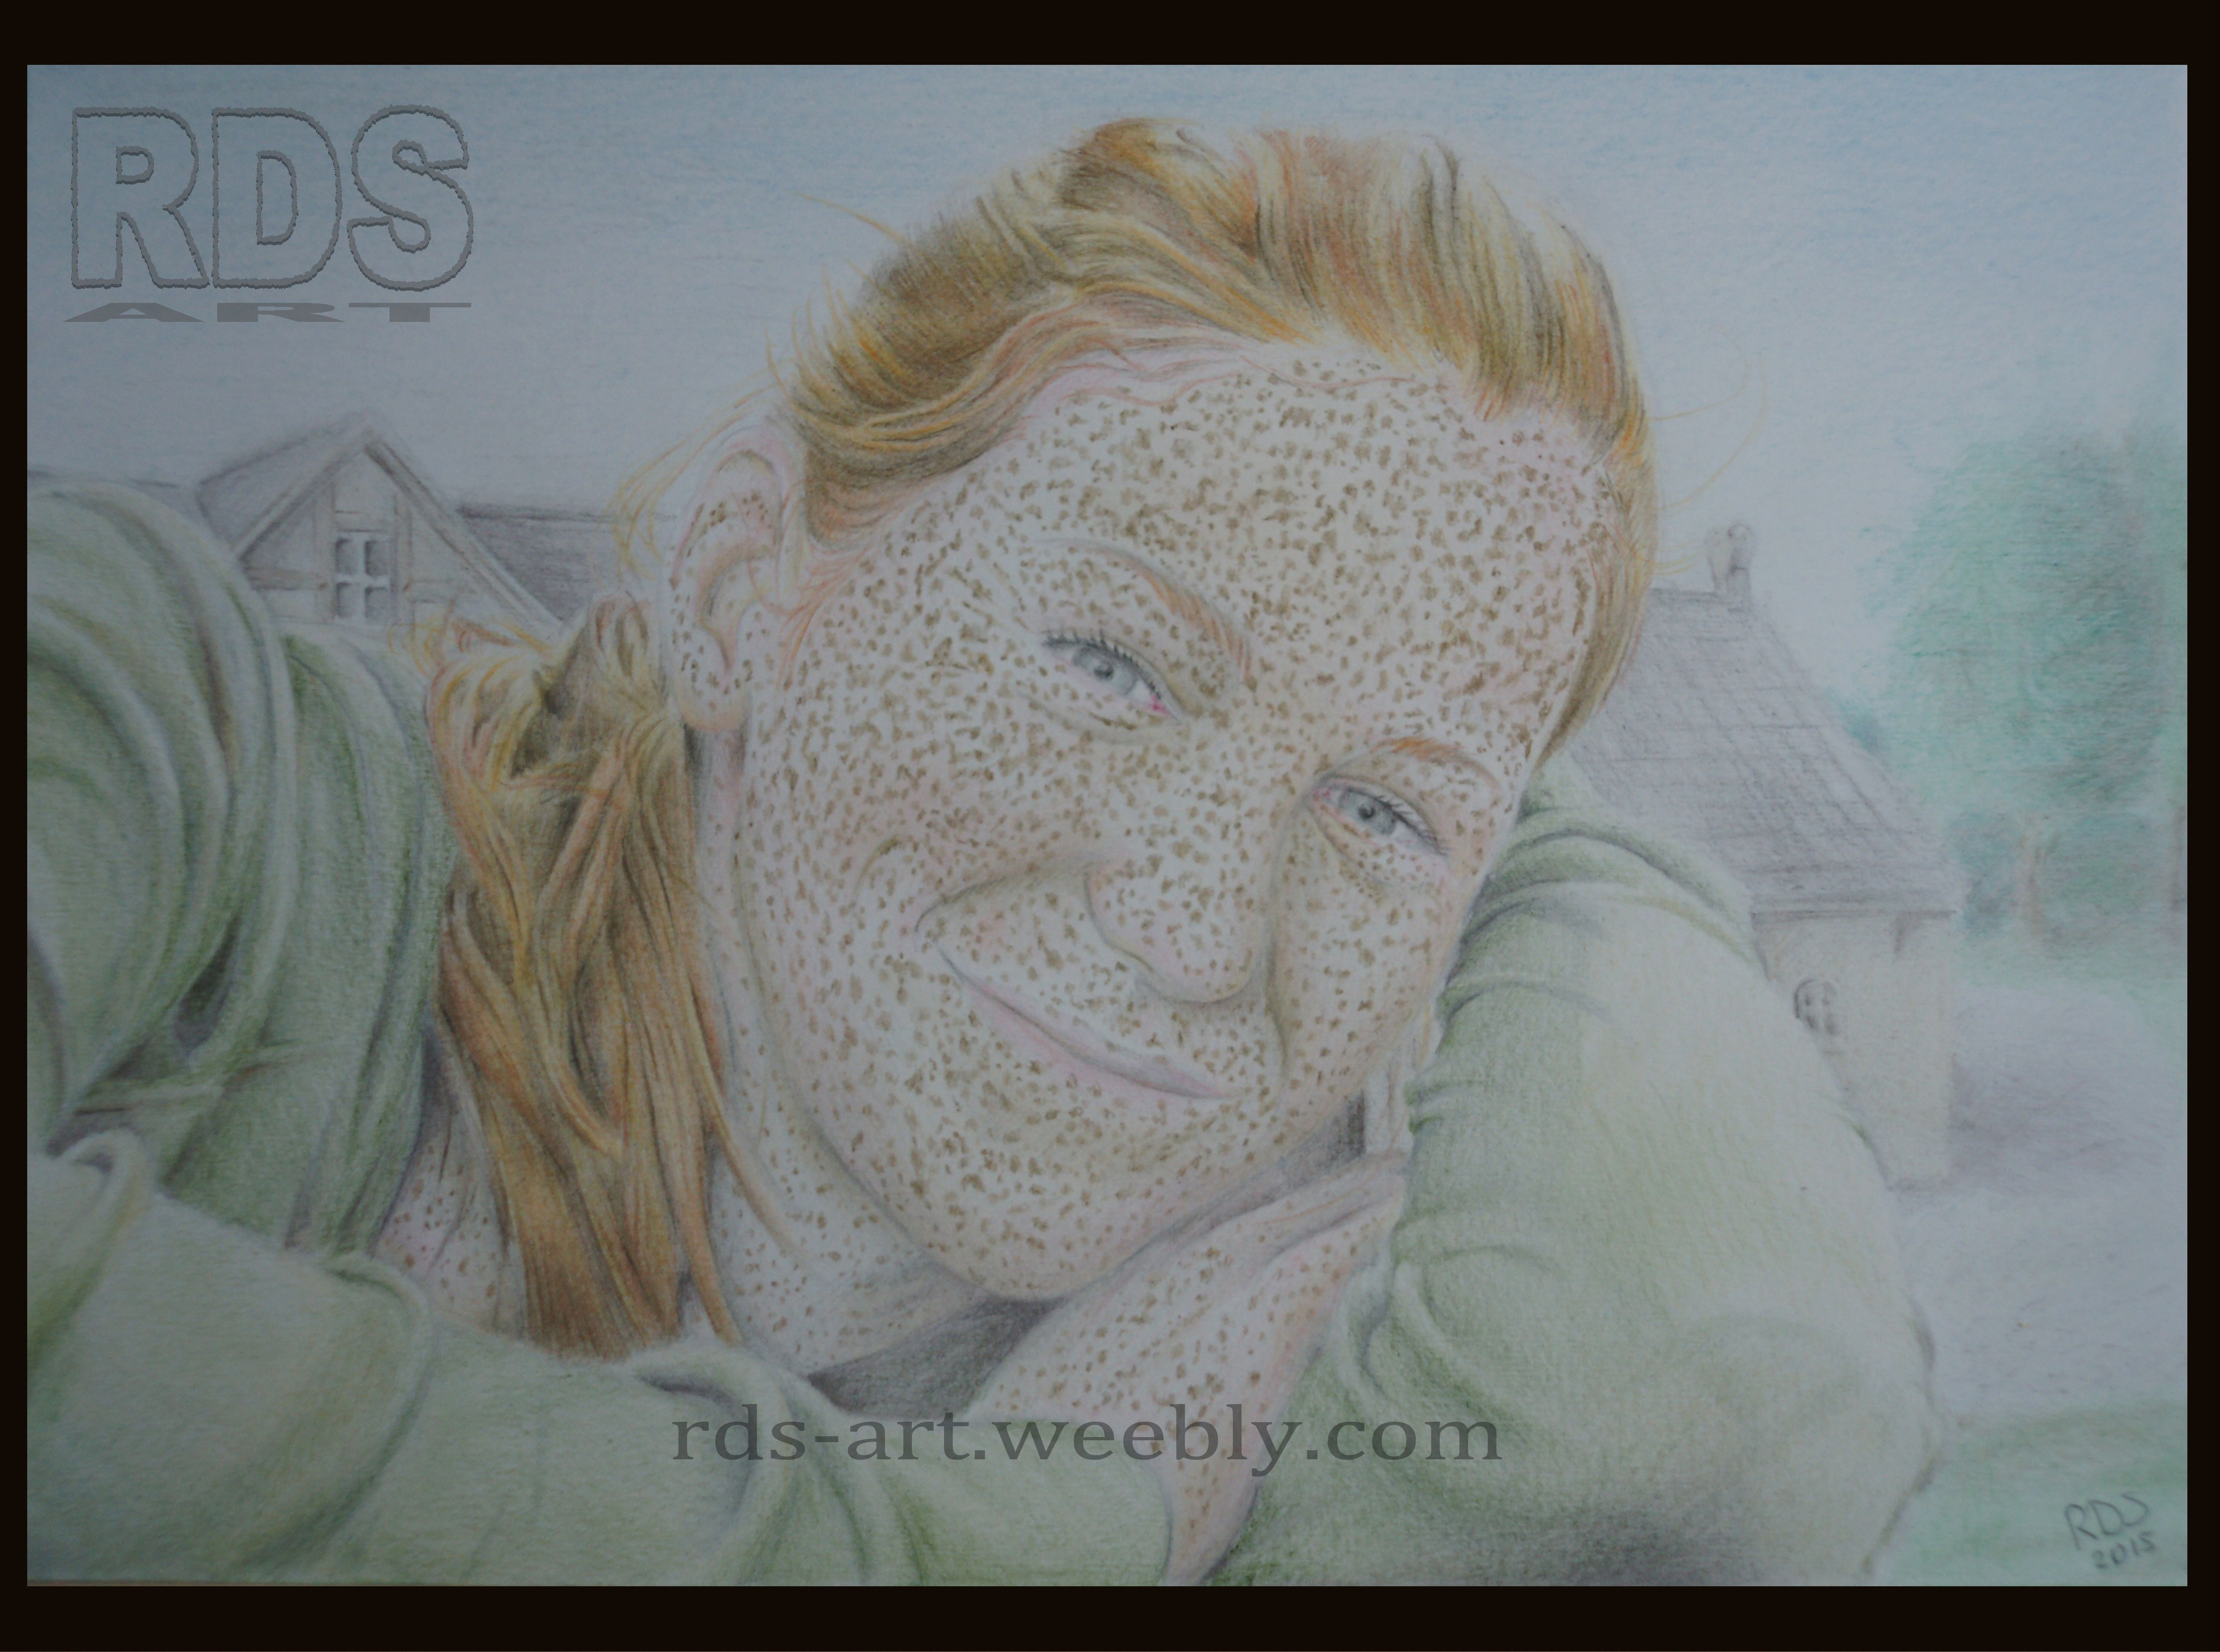 Jamie M. Redhead portrait drawing www.rds-art.weebly.com #redhead #ginger #drawing #pencil #RDS-art